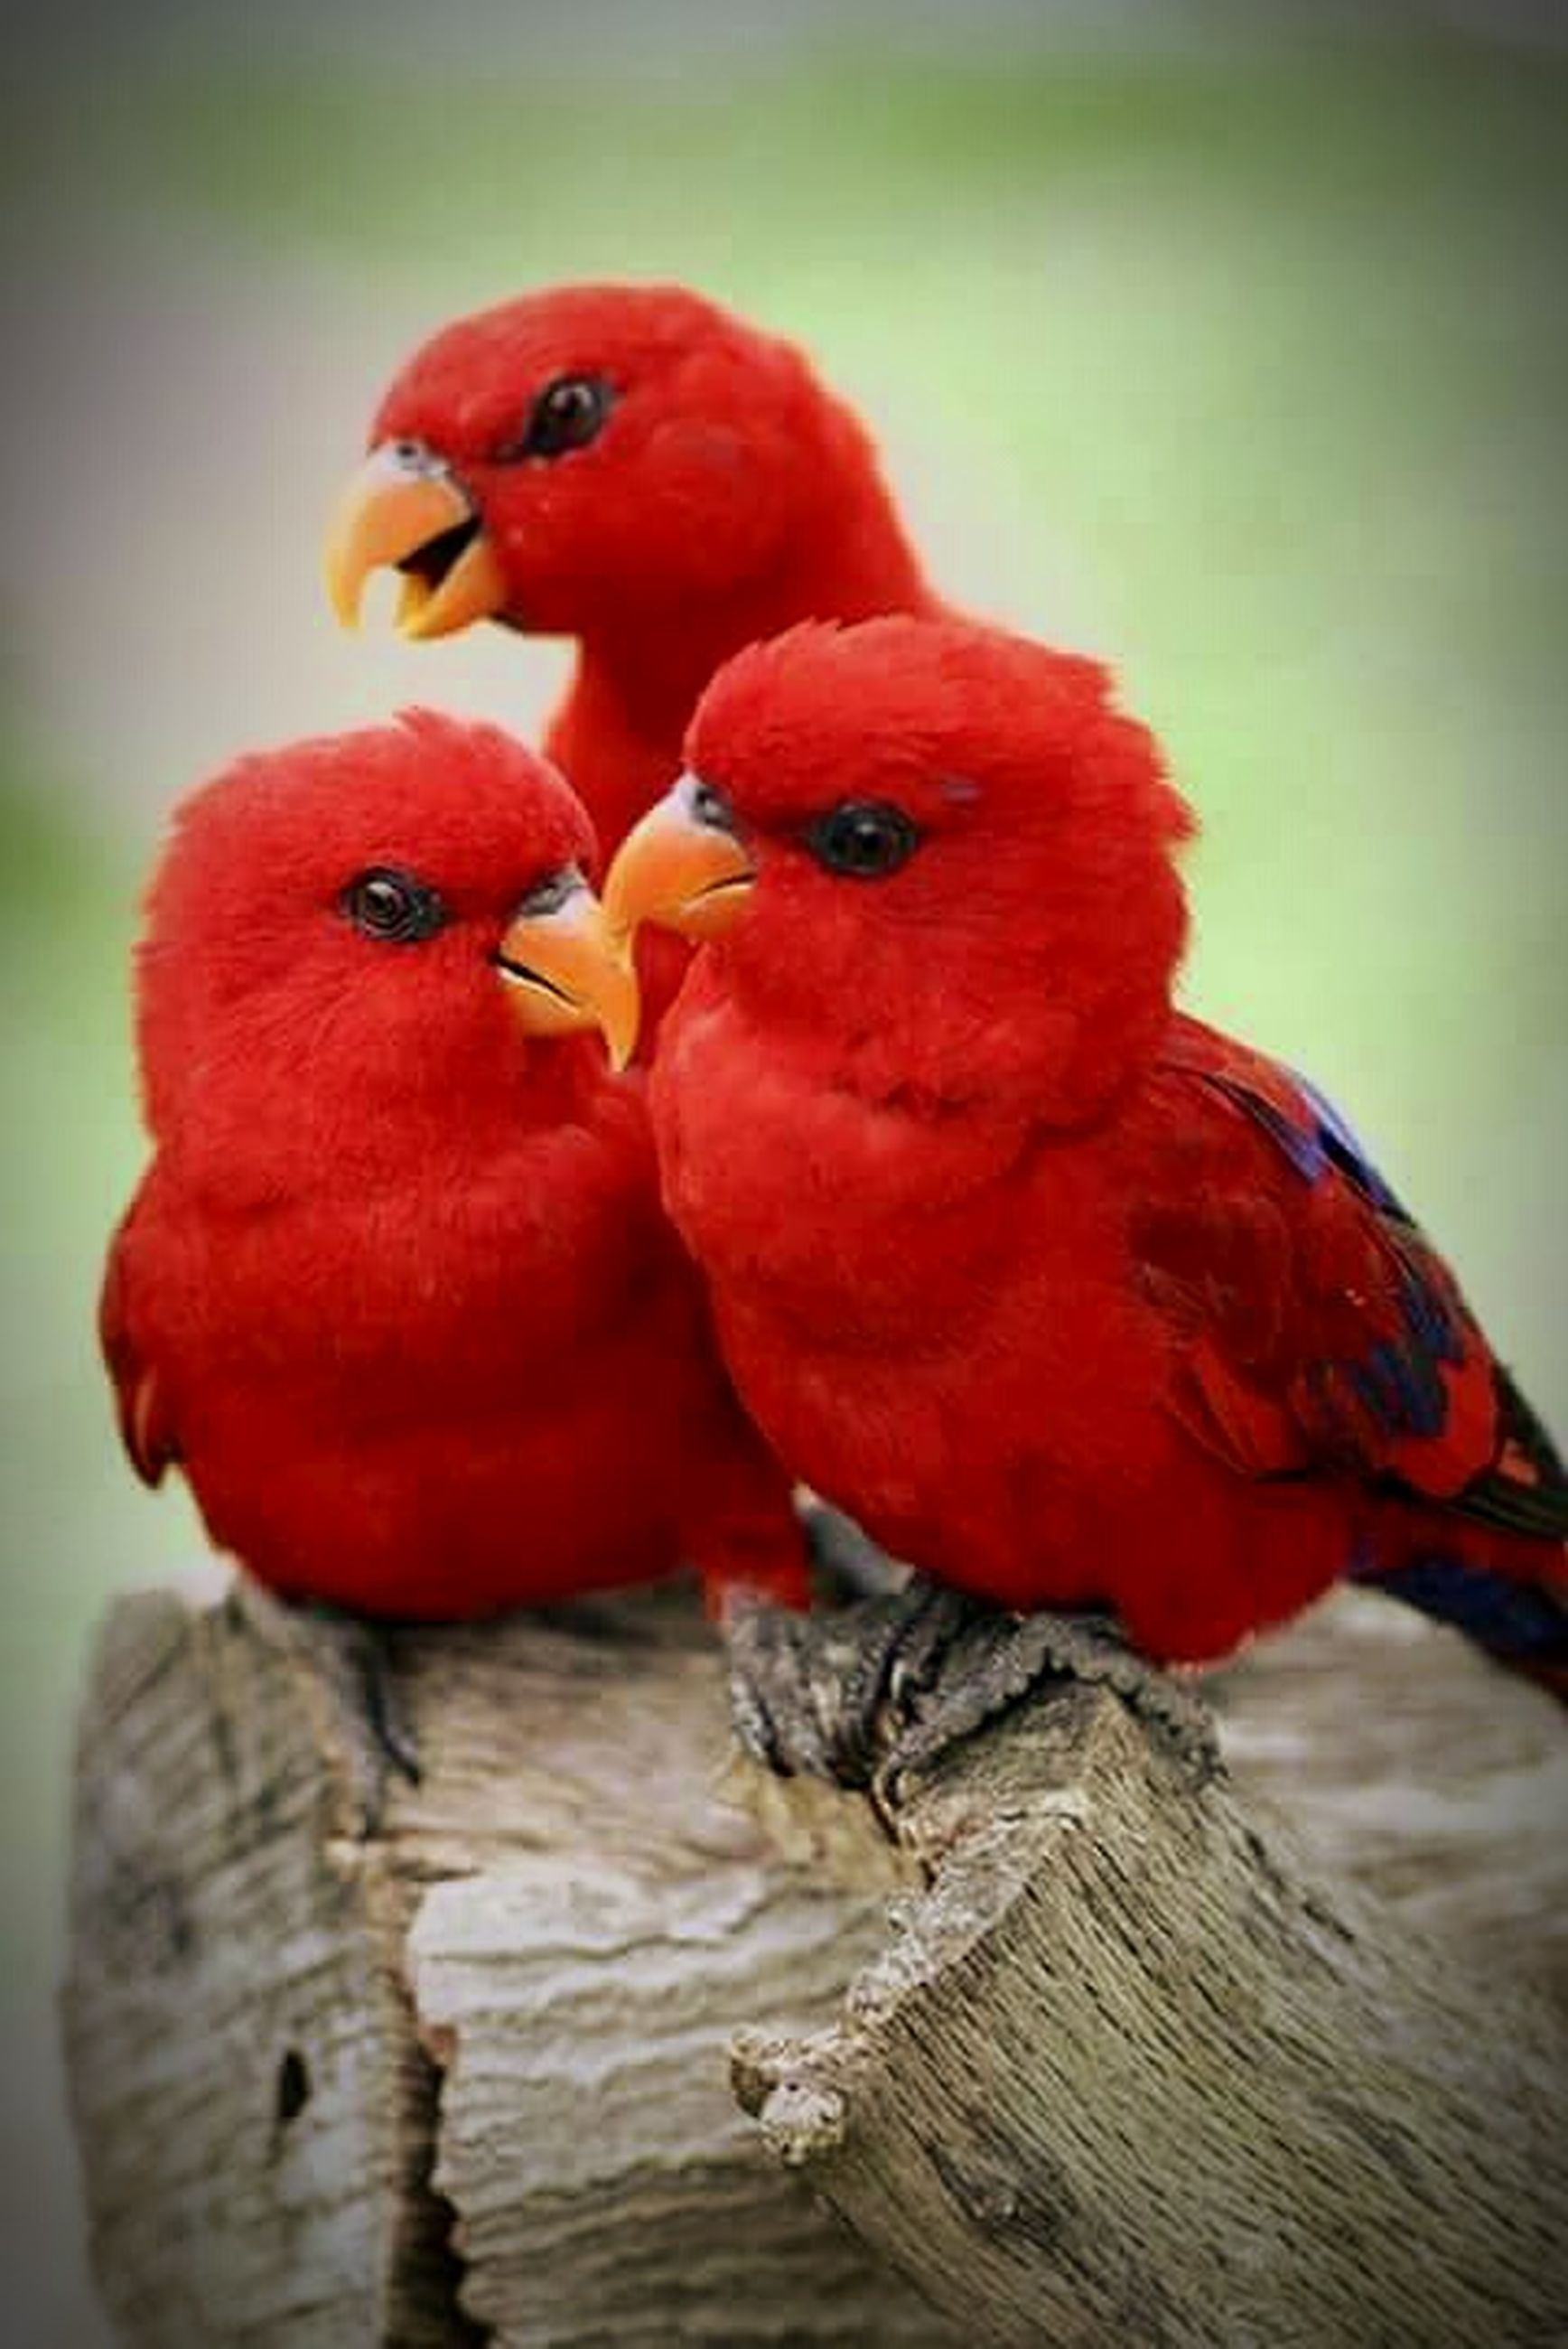 bird, red, animal themes, close-up, fruit, animals in the wild, focus on foreground, one animal, wildlife, food and drink, parrot, beak, chicken - bird, food, perching, two animals, nature, no people, indoors, day